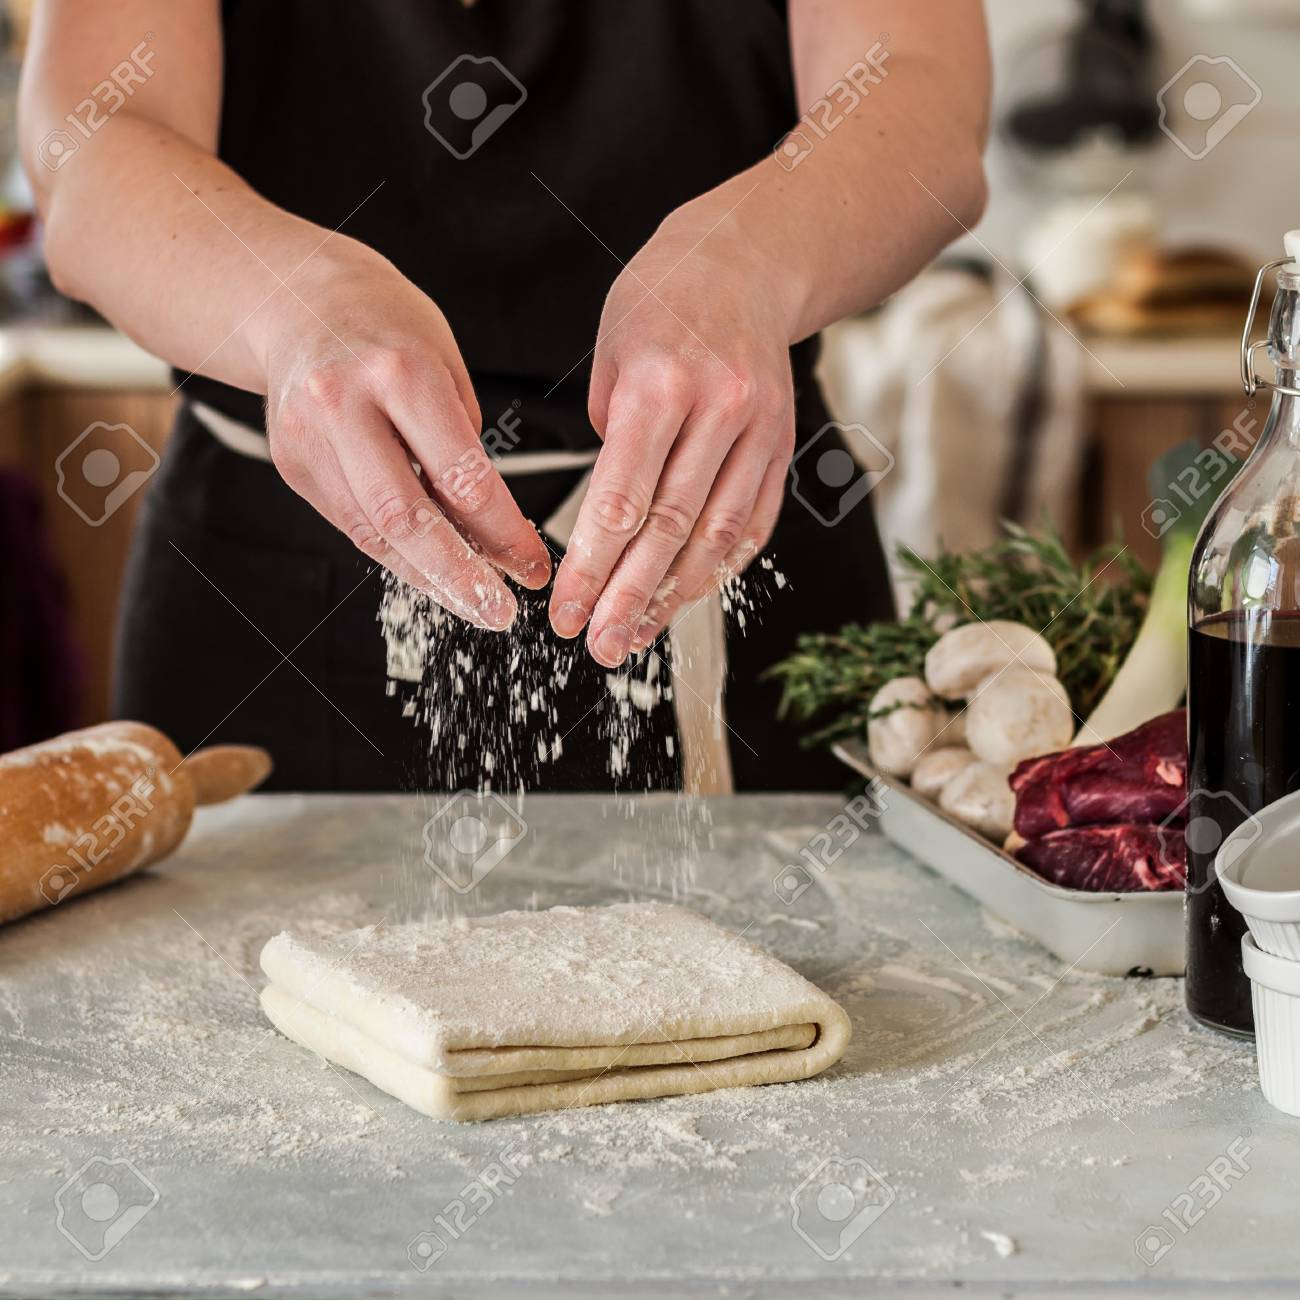 A Woman Making Puff Pastry Dough for Meat Pies, square Stock Photo - 99036743